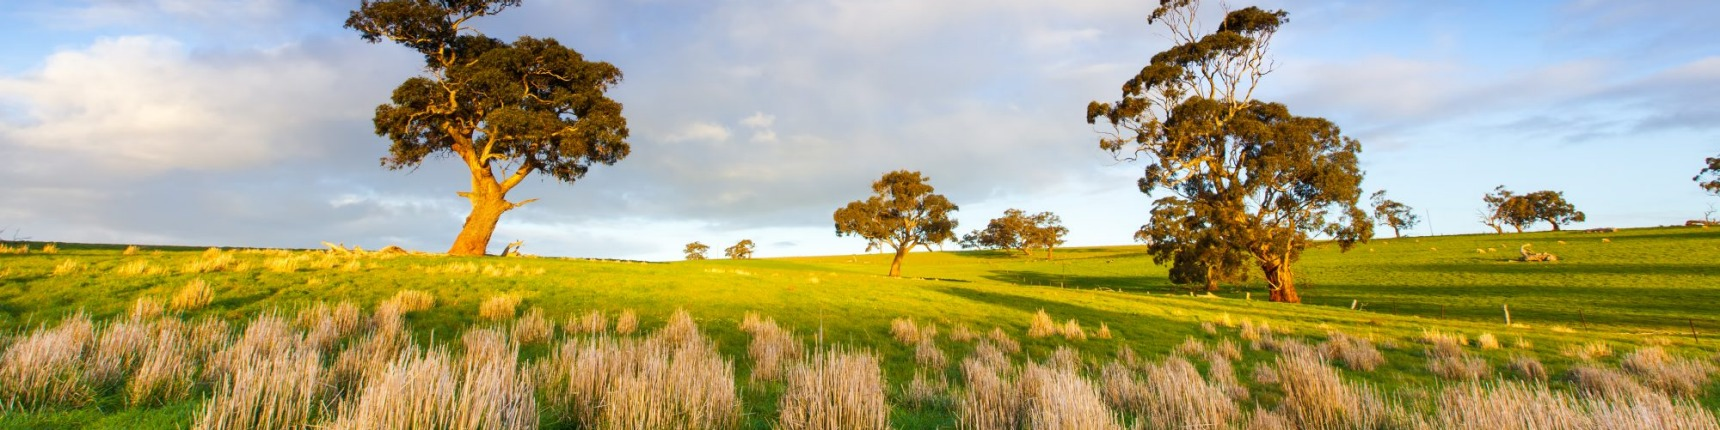 South Australia, countryside